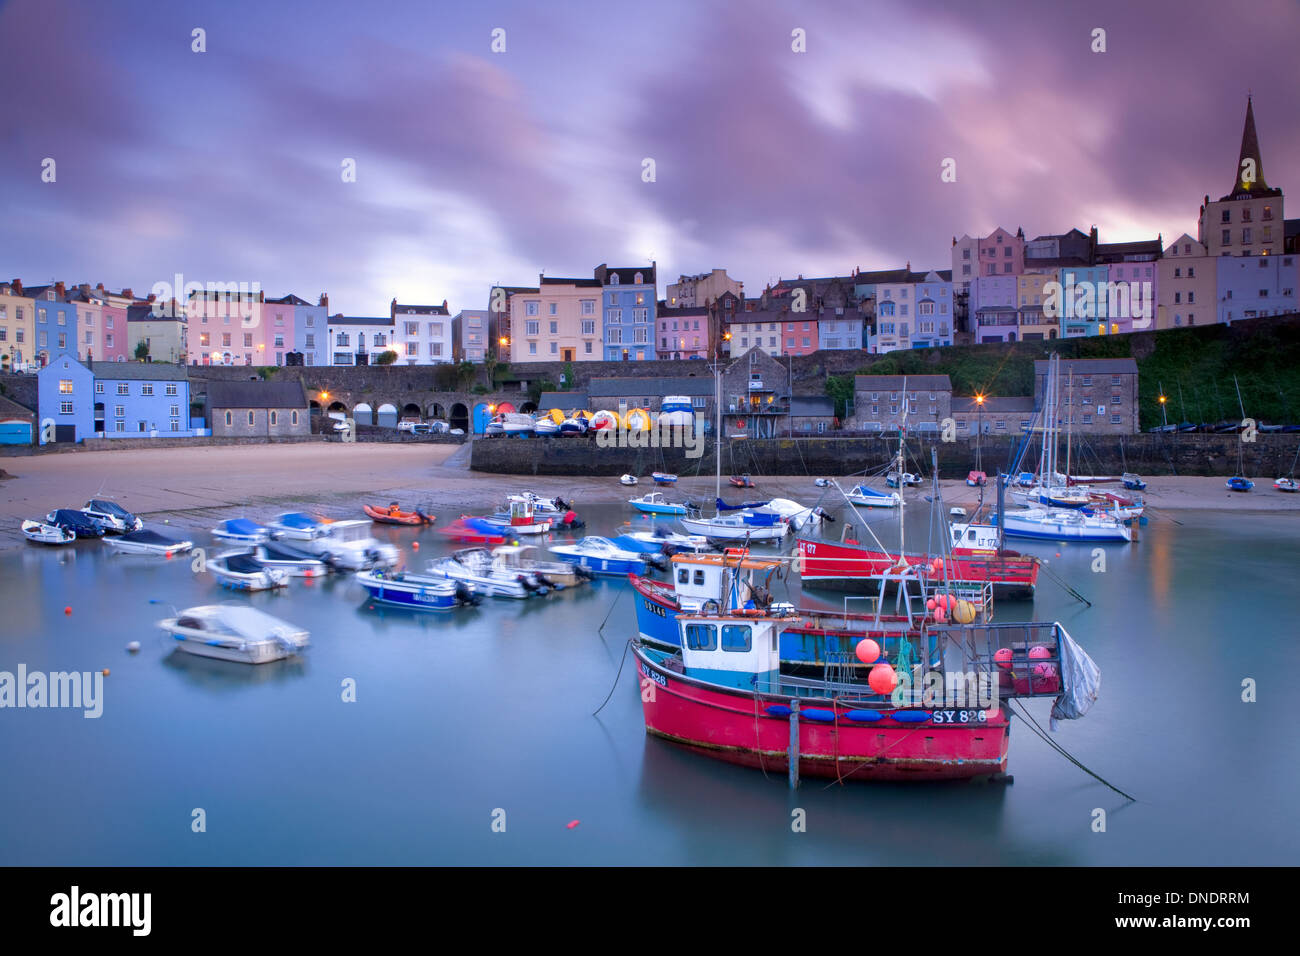 Tenby harbour with moored up Fishing boats. The town of Tenby with the flats and holiday homes are in the background Stock Photo